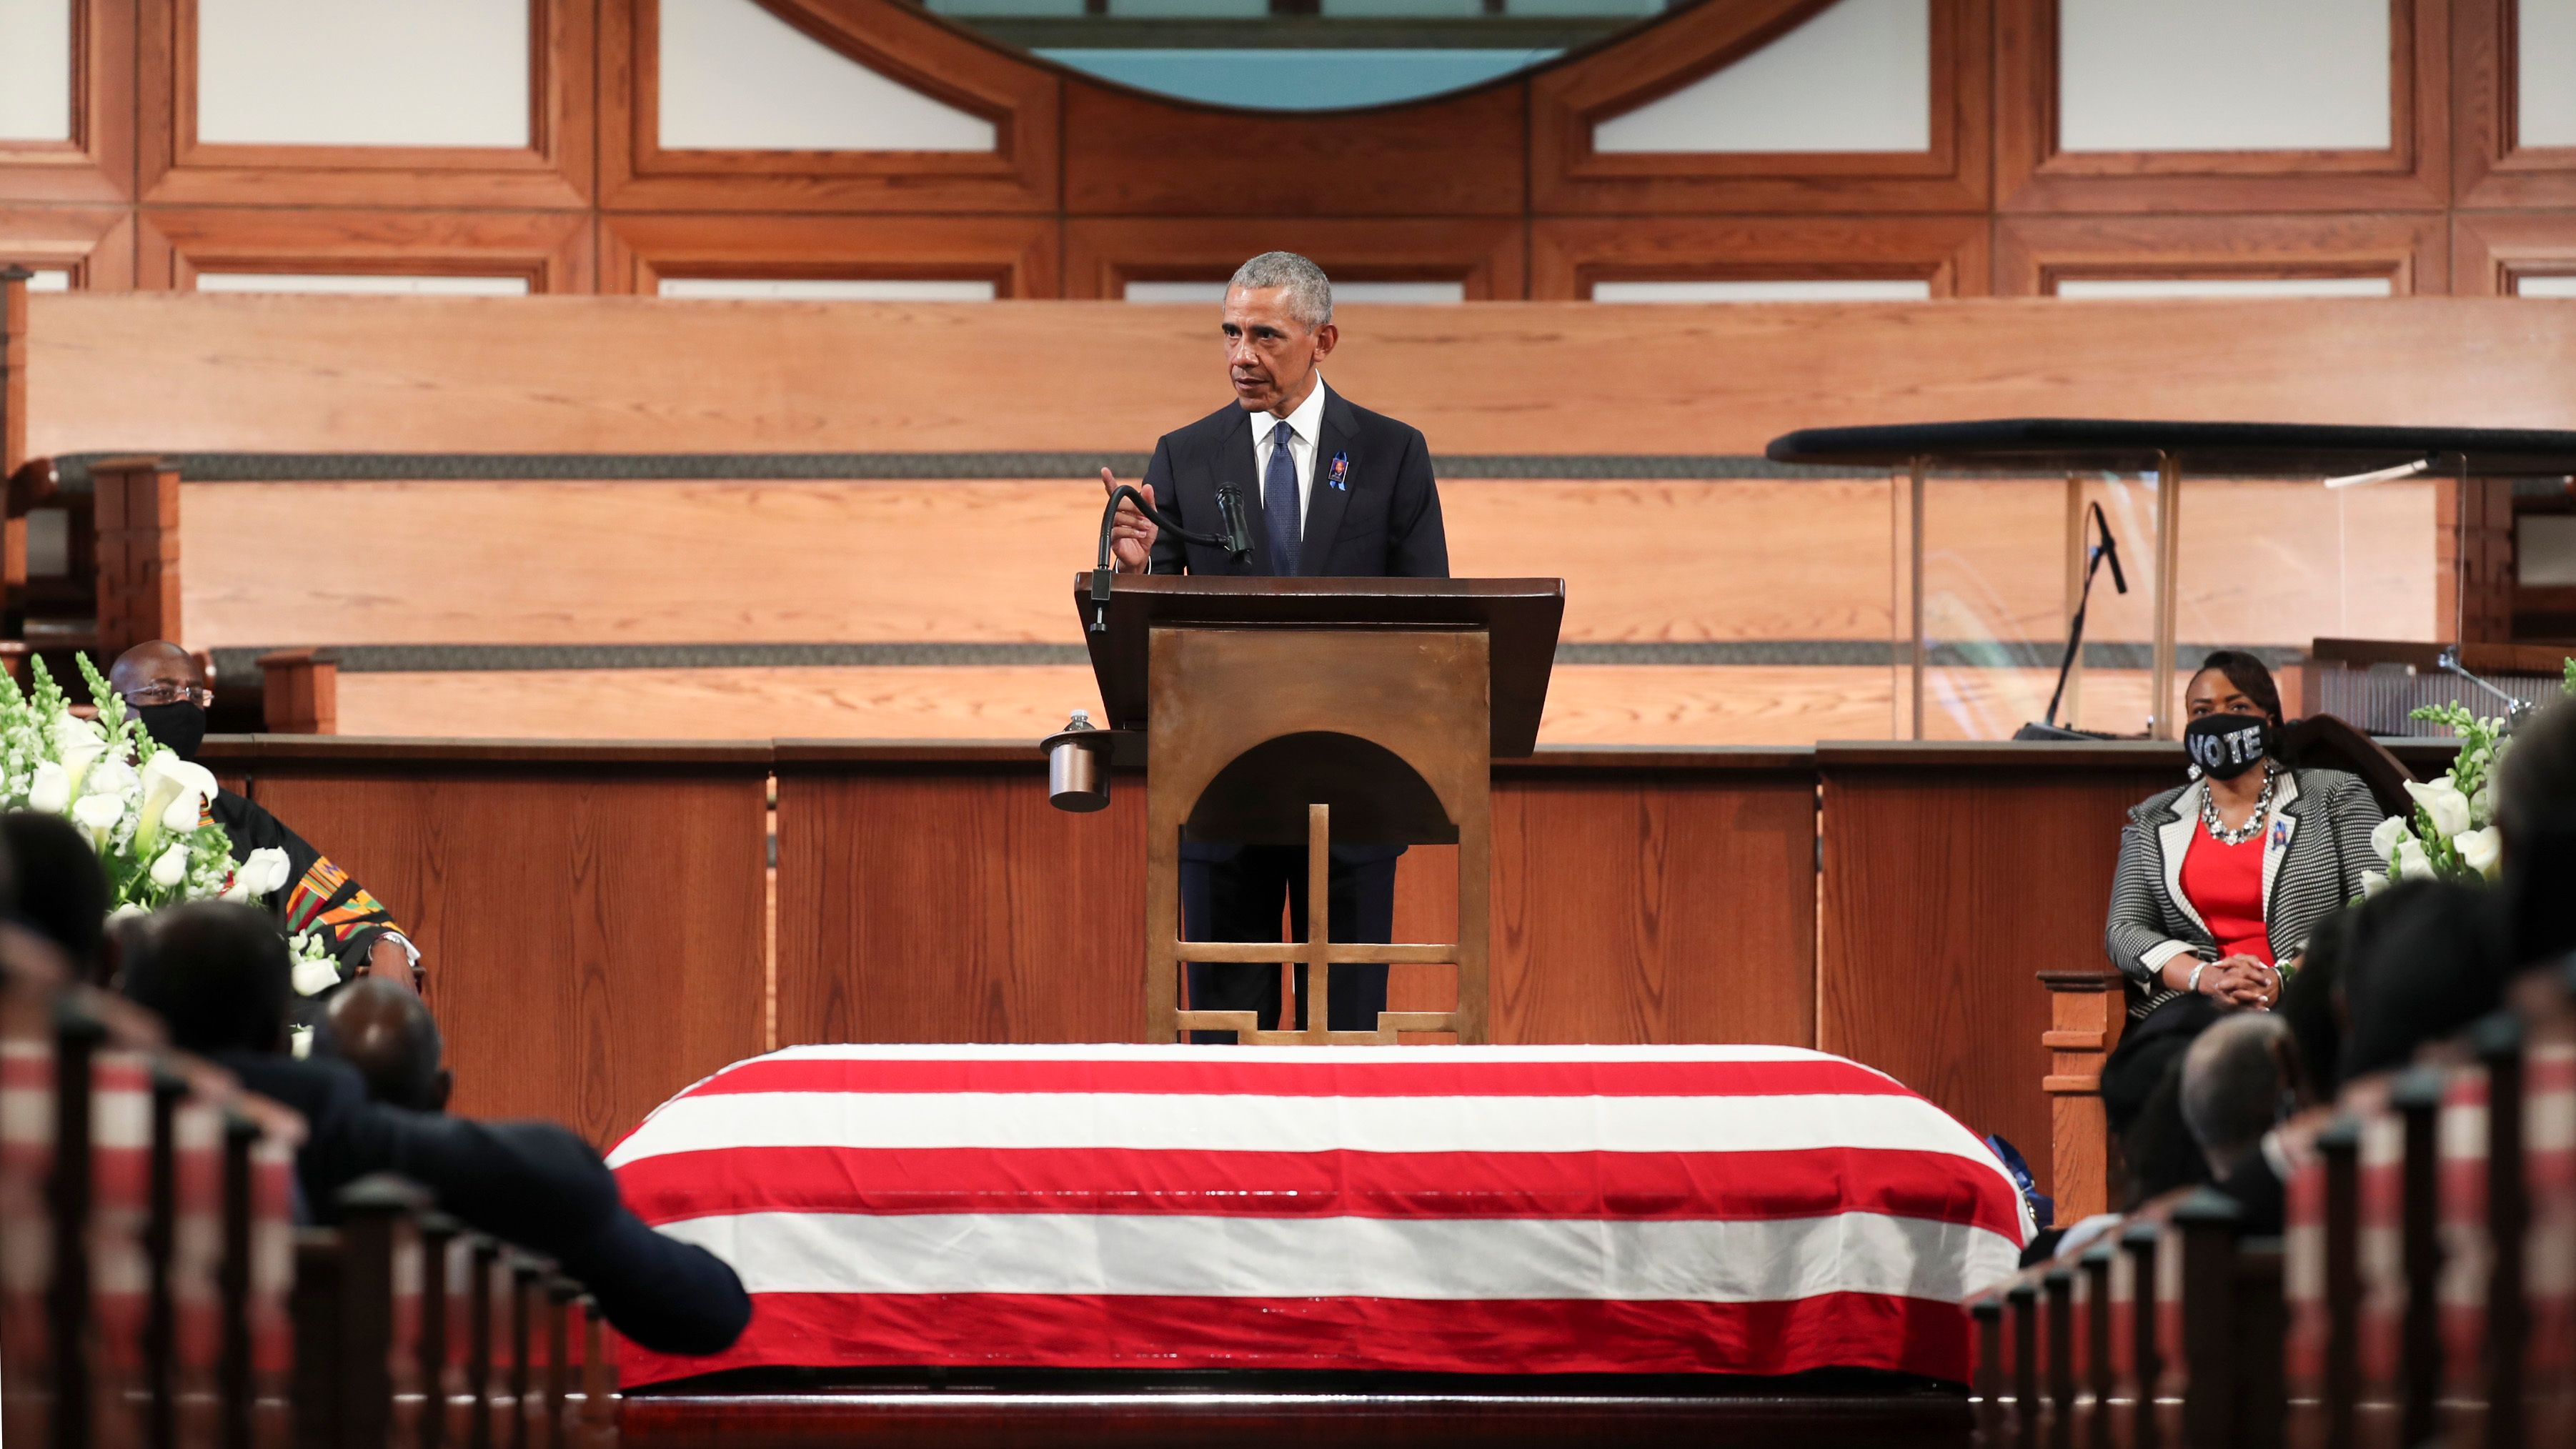 """Former President Barack Obama called the filibuster a """"Jim Crow relic"""" in his eulogy at the funeral service for t"""